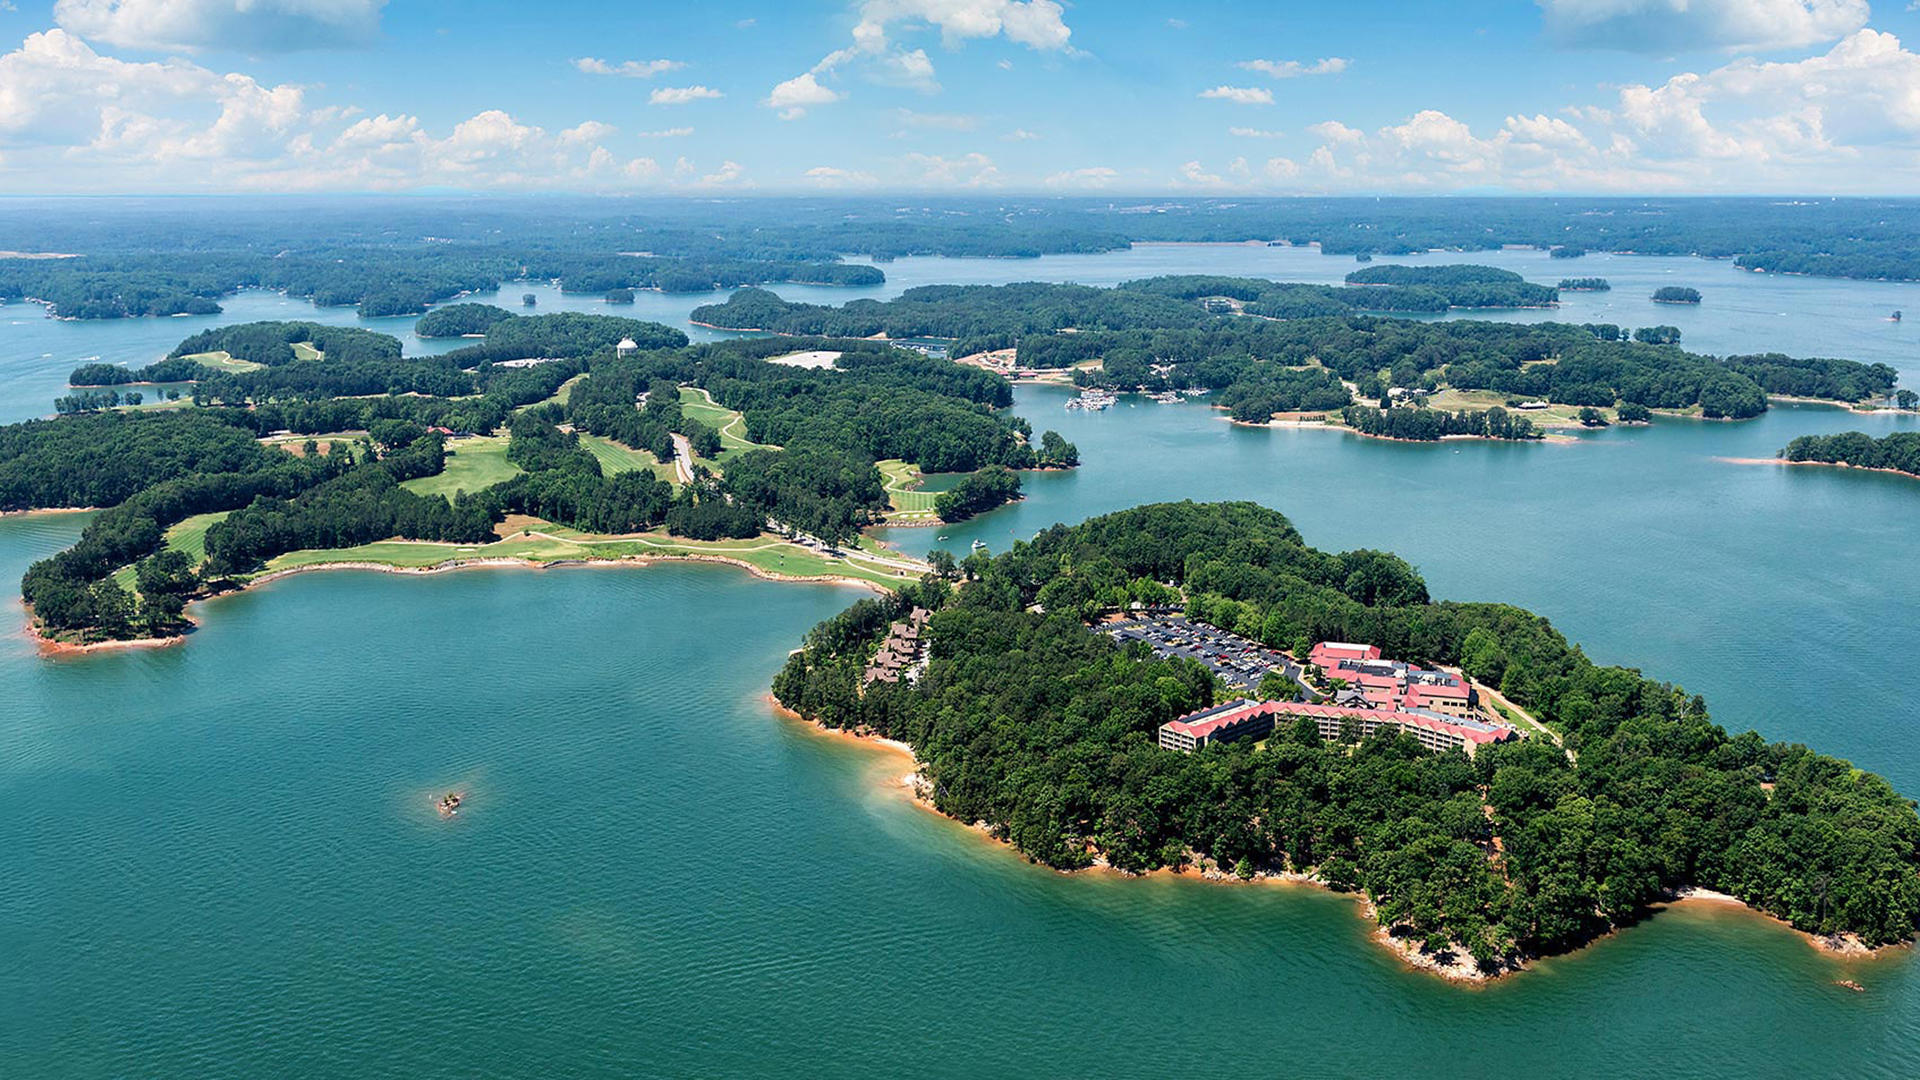 Aerial View of Lanier Islands